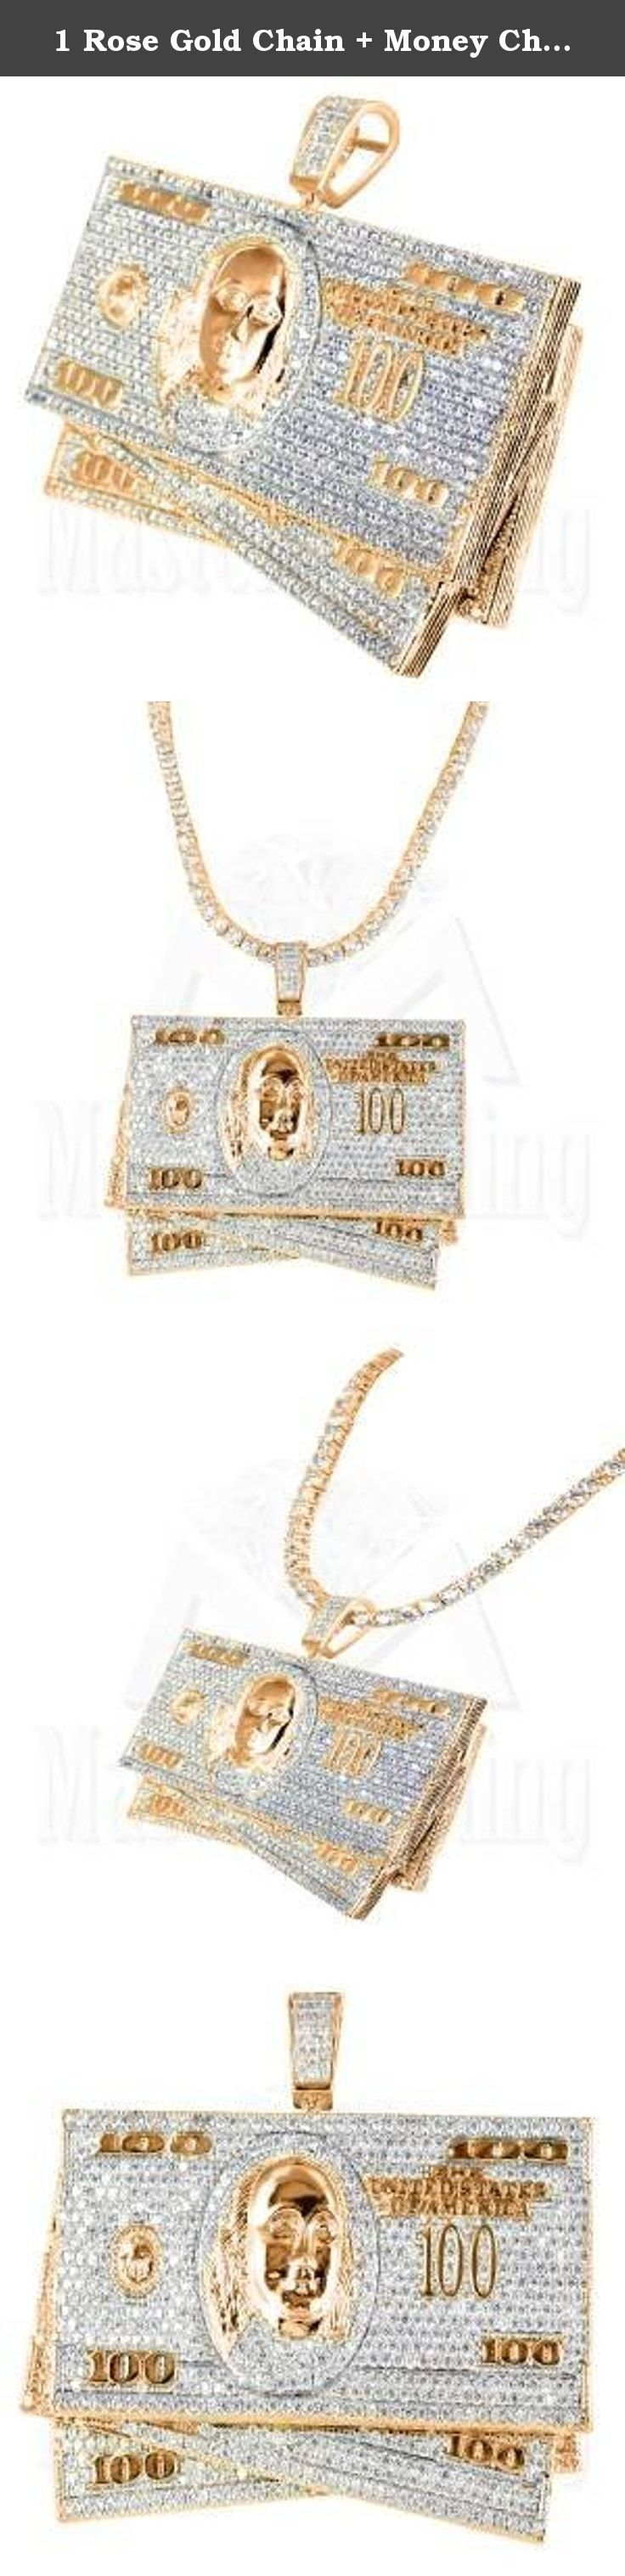 1 Rose Gold Chain + Money Charm Pendant For Mens Sale New Hip Hop. - 100 Dollar Bill Pendant + Rose Gold Chain - Simulated Diamond - Color: 14k Rose Gold Finish You Get FREE SHIPPING With This Purchase We specialize in custom jewelry. If you can think it, we can make it!.